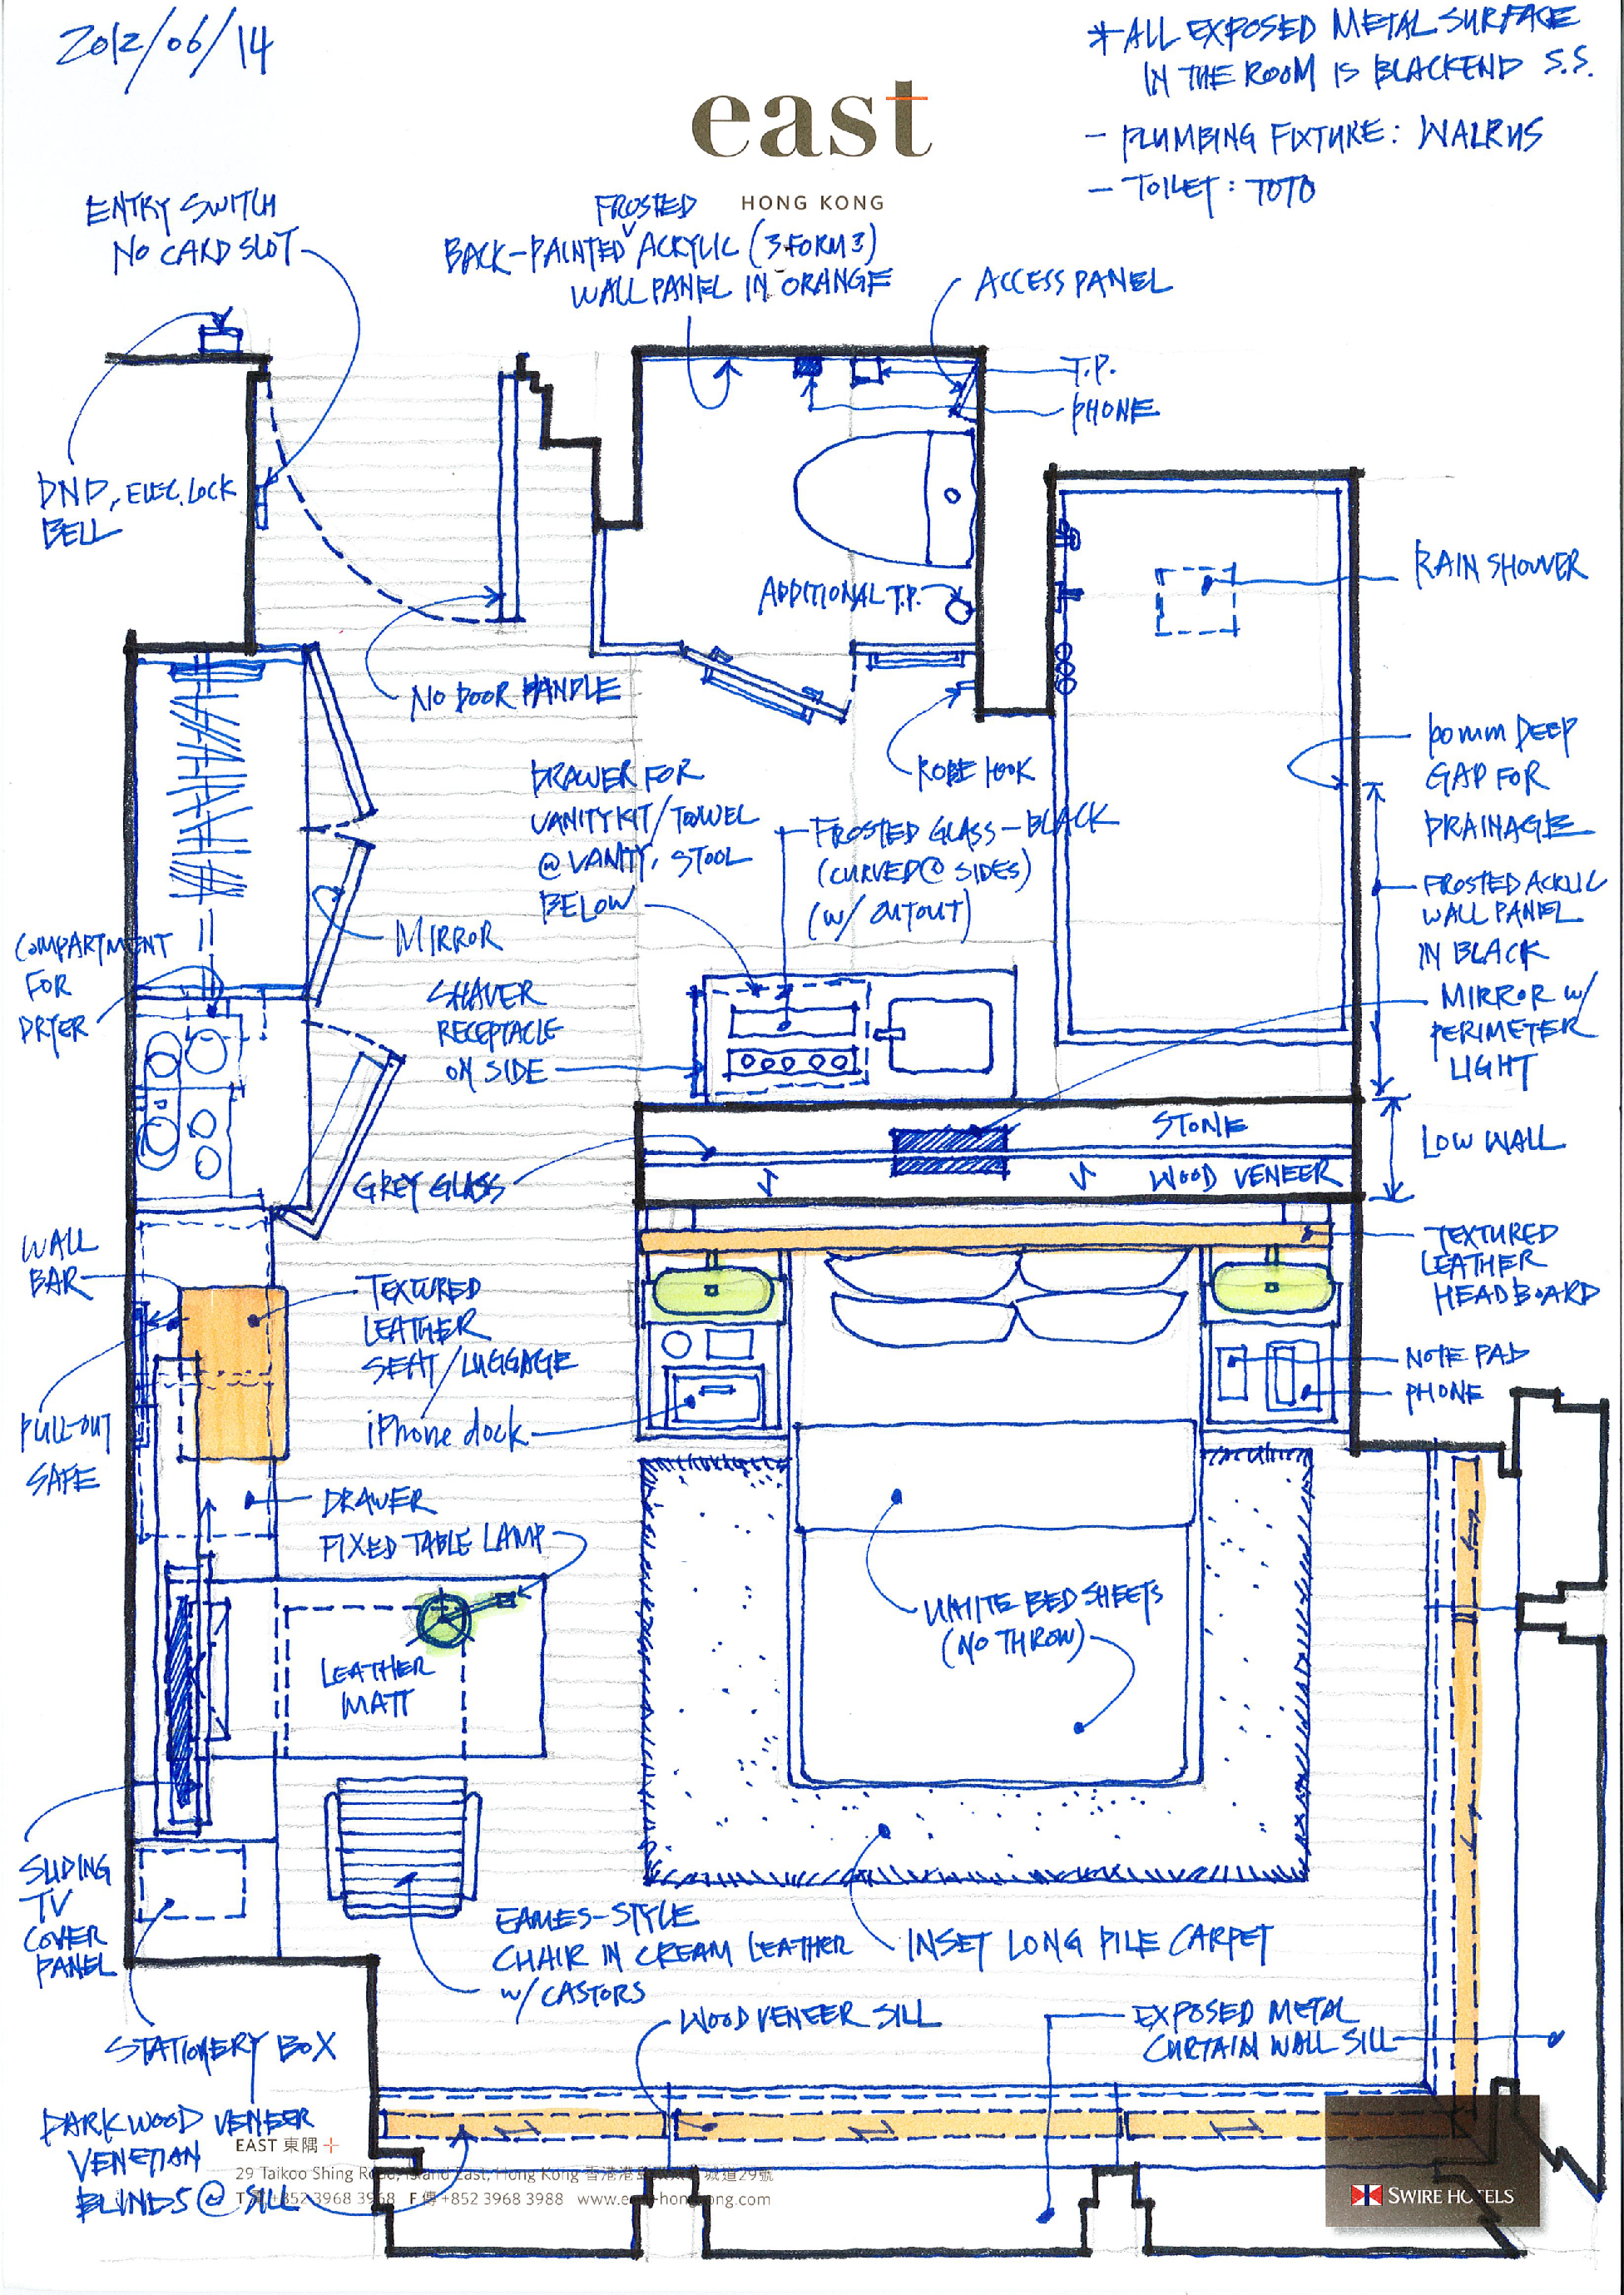 East Hong Kong With Images Hotel Floor Plan Hotel Room Plan